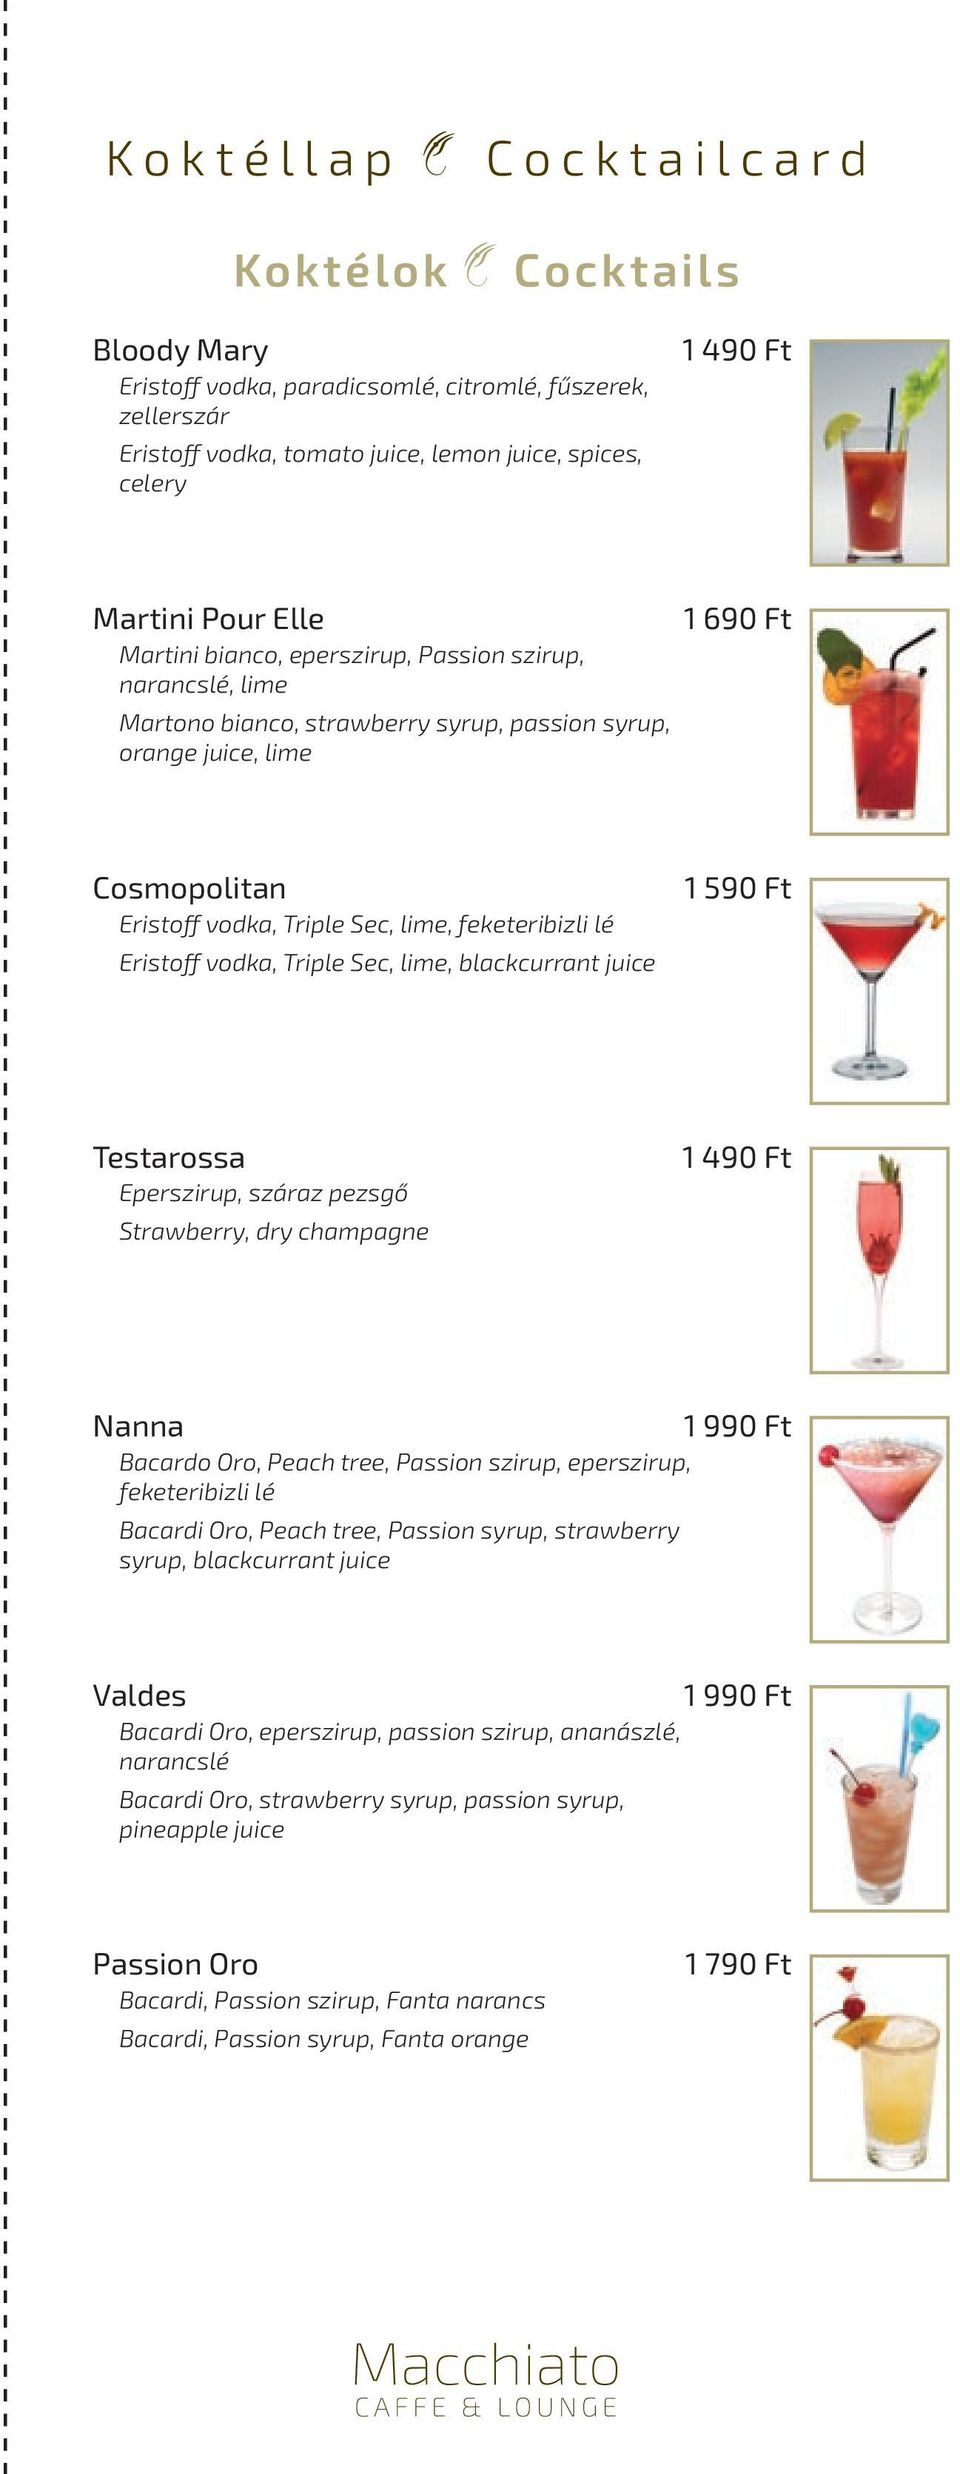 lé Eristoff vodka, Triple Sec, lime, blackcurrant juice 1 Testarossa Eperszirup, száraz pezsgő Strawberry, dry champagne 1 490 Ft Nanna 1 Bacardo Oro, Peach tree, Passion szirup, eperszirup,